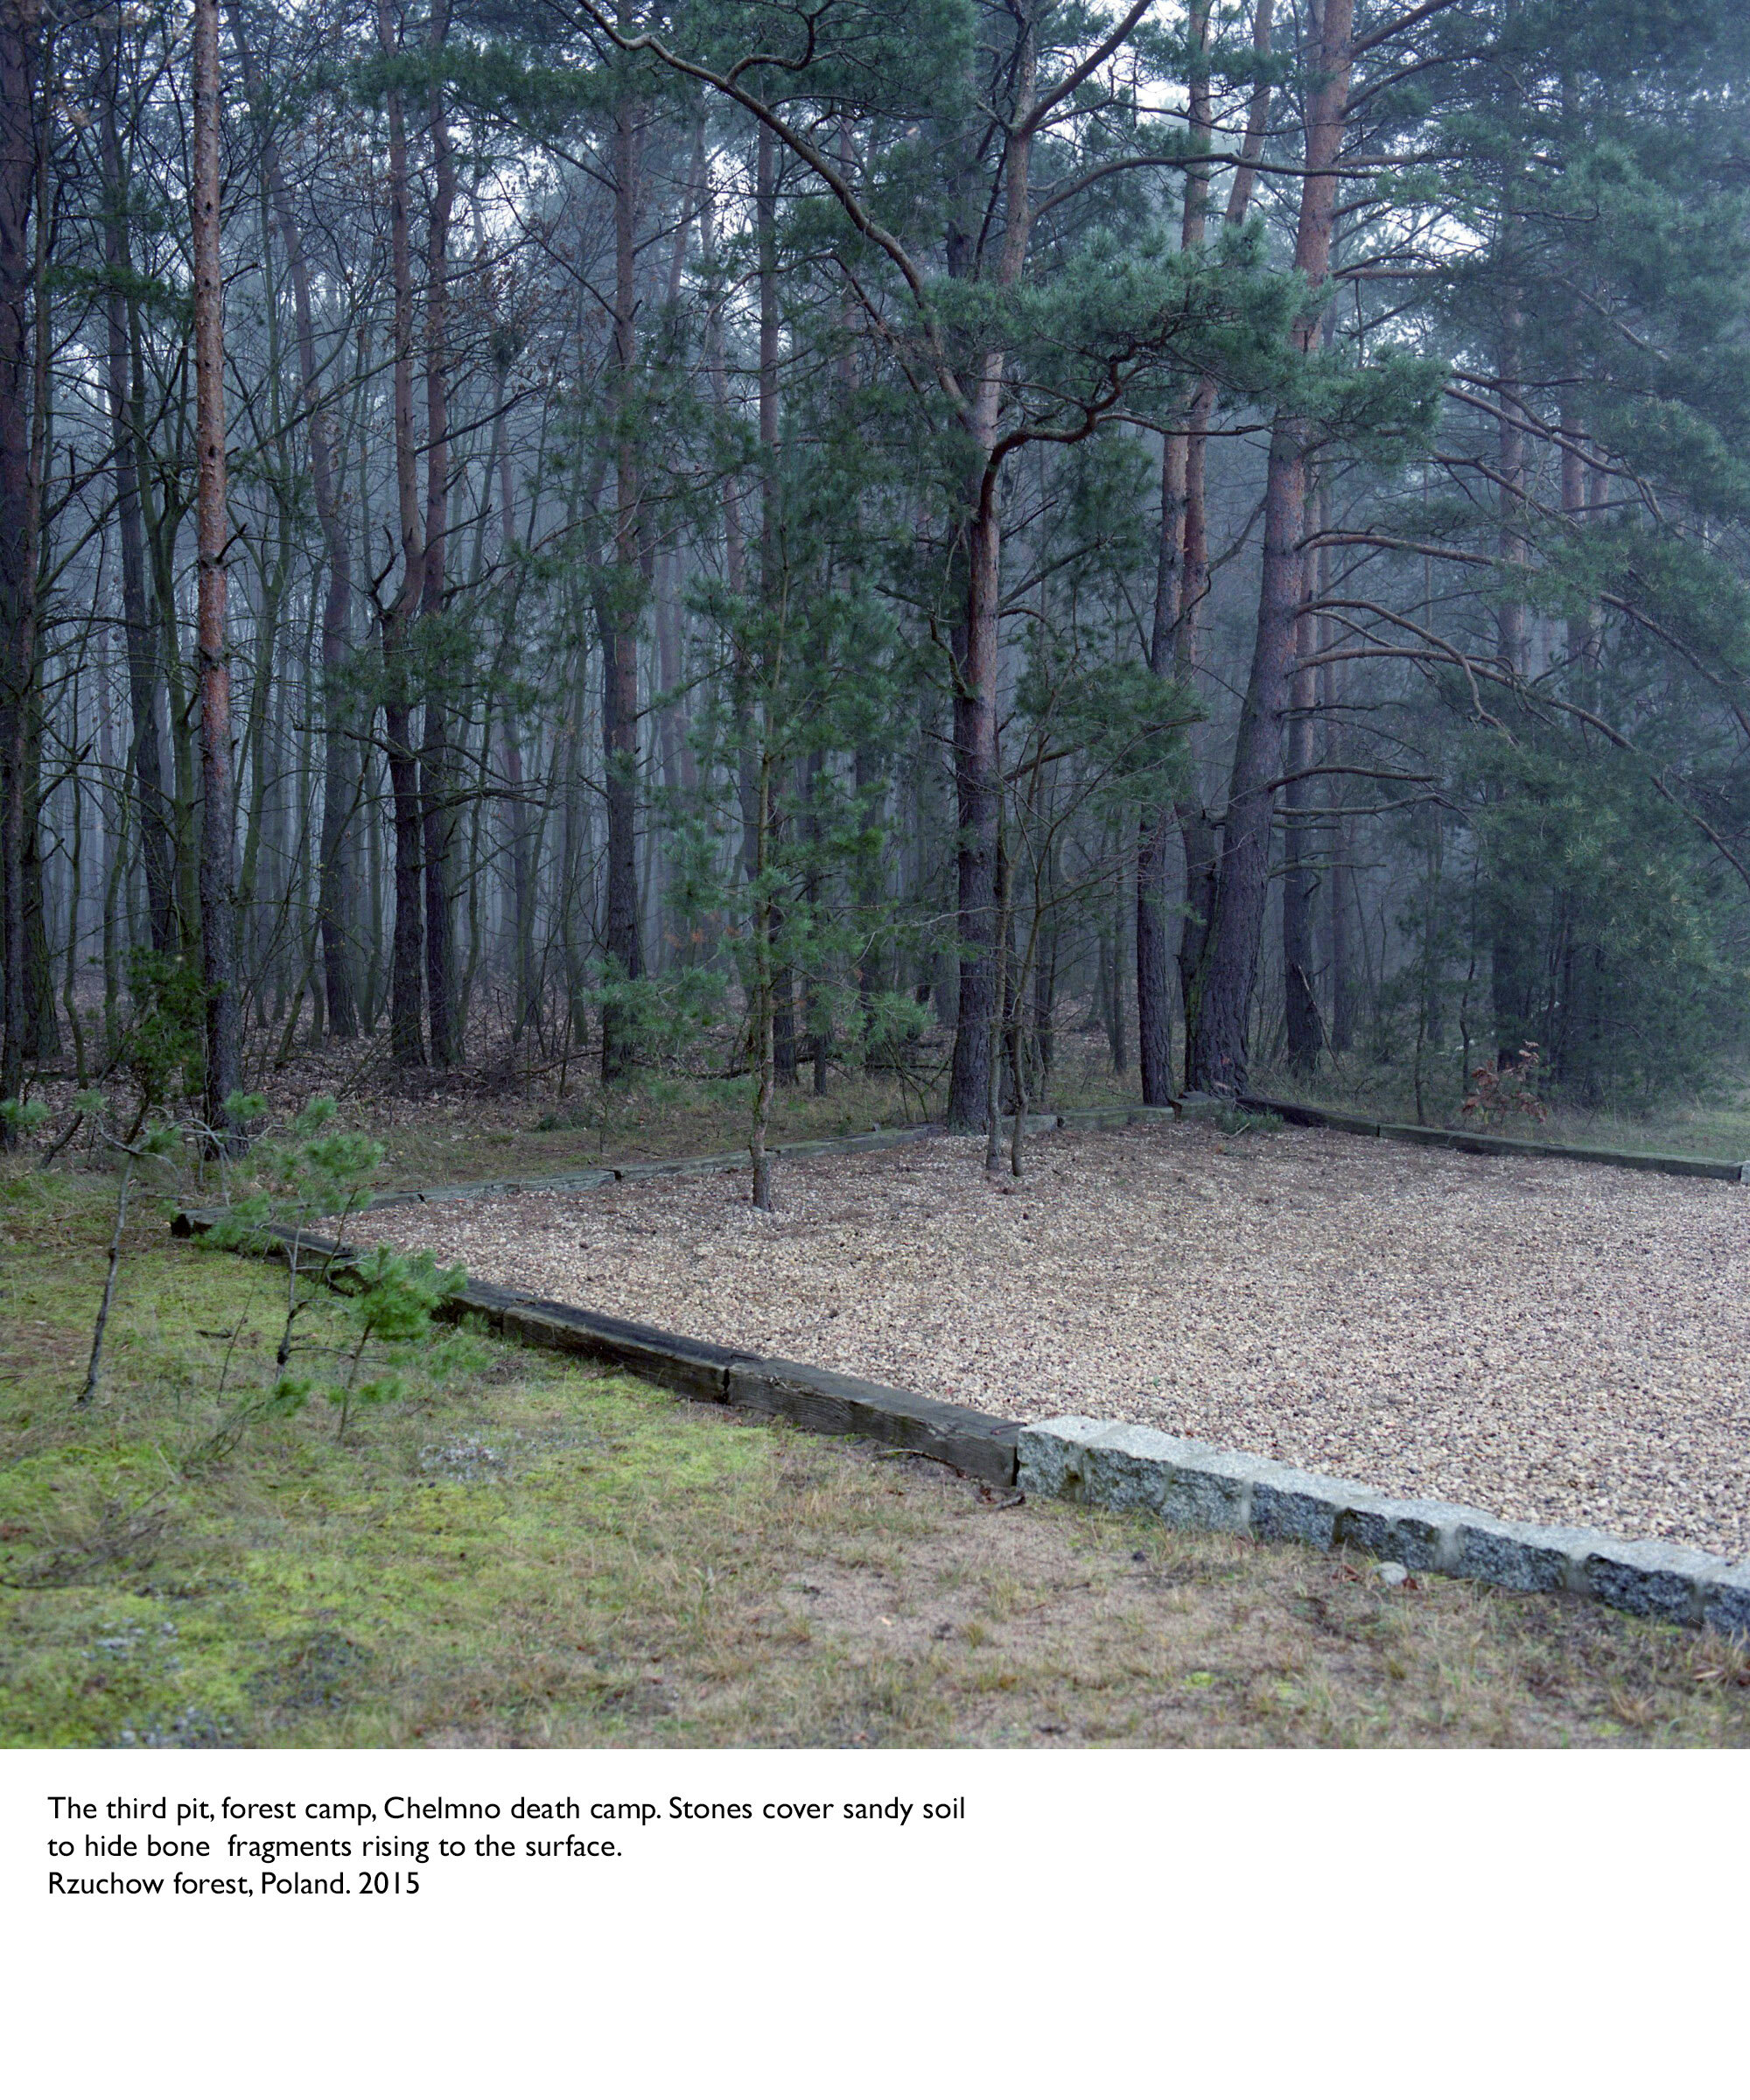 The third pit, forest camp, Chelmno death camp. Stones cover sandy soil to hide bone fragments rising to the surface. Rzuchow forest, Poland. 2015